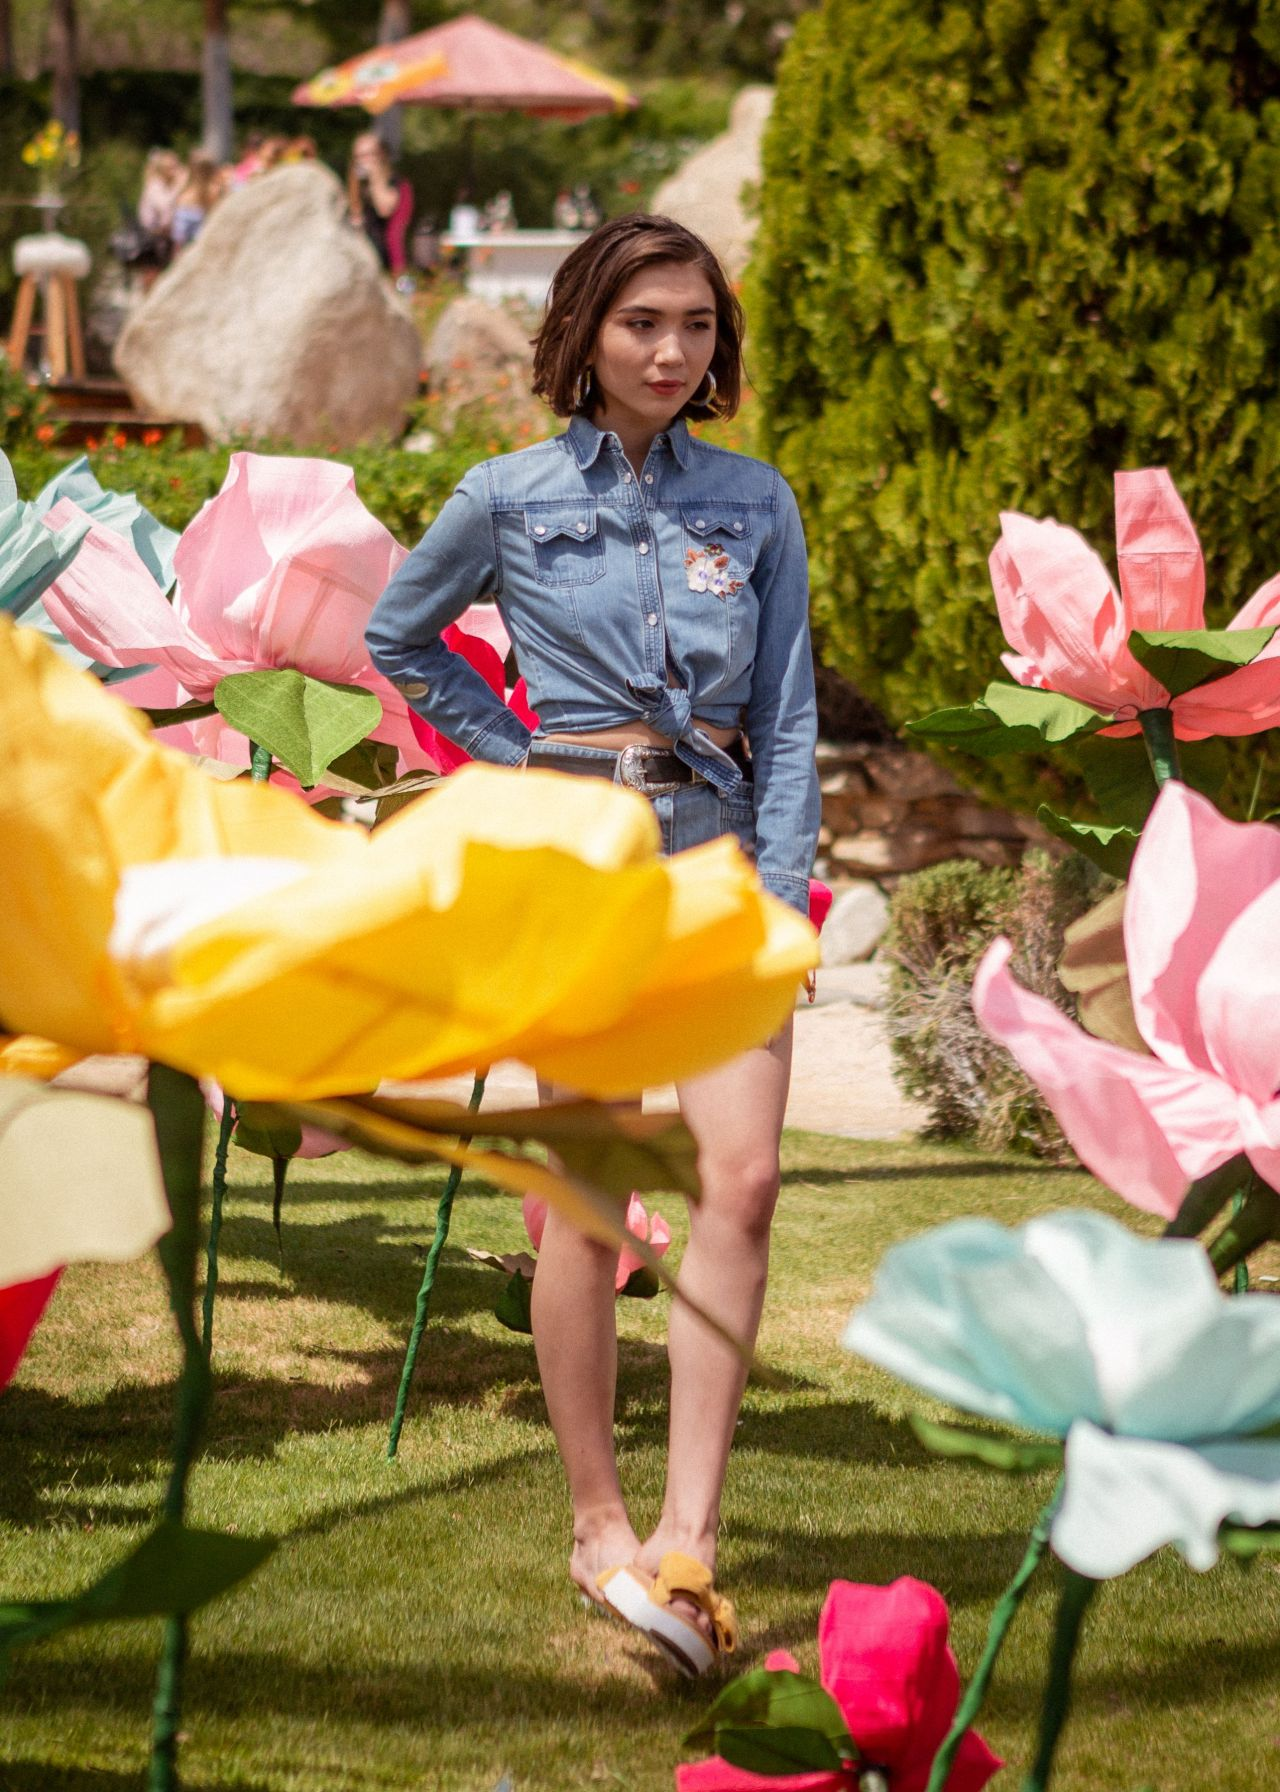 Rowan Blanchard Festival Kick Off Brunch At Coachella 2018